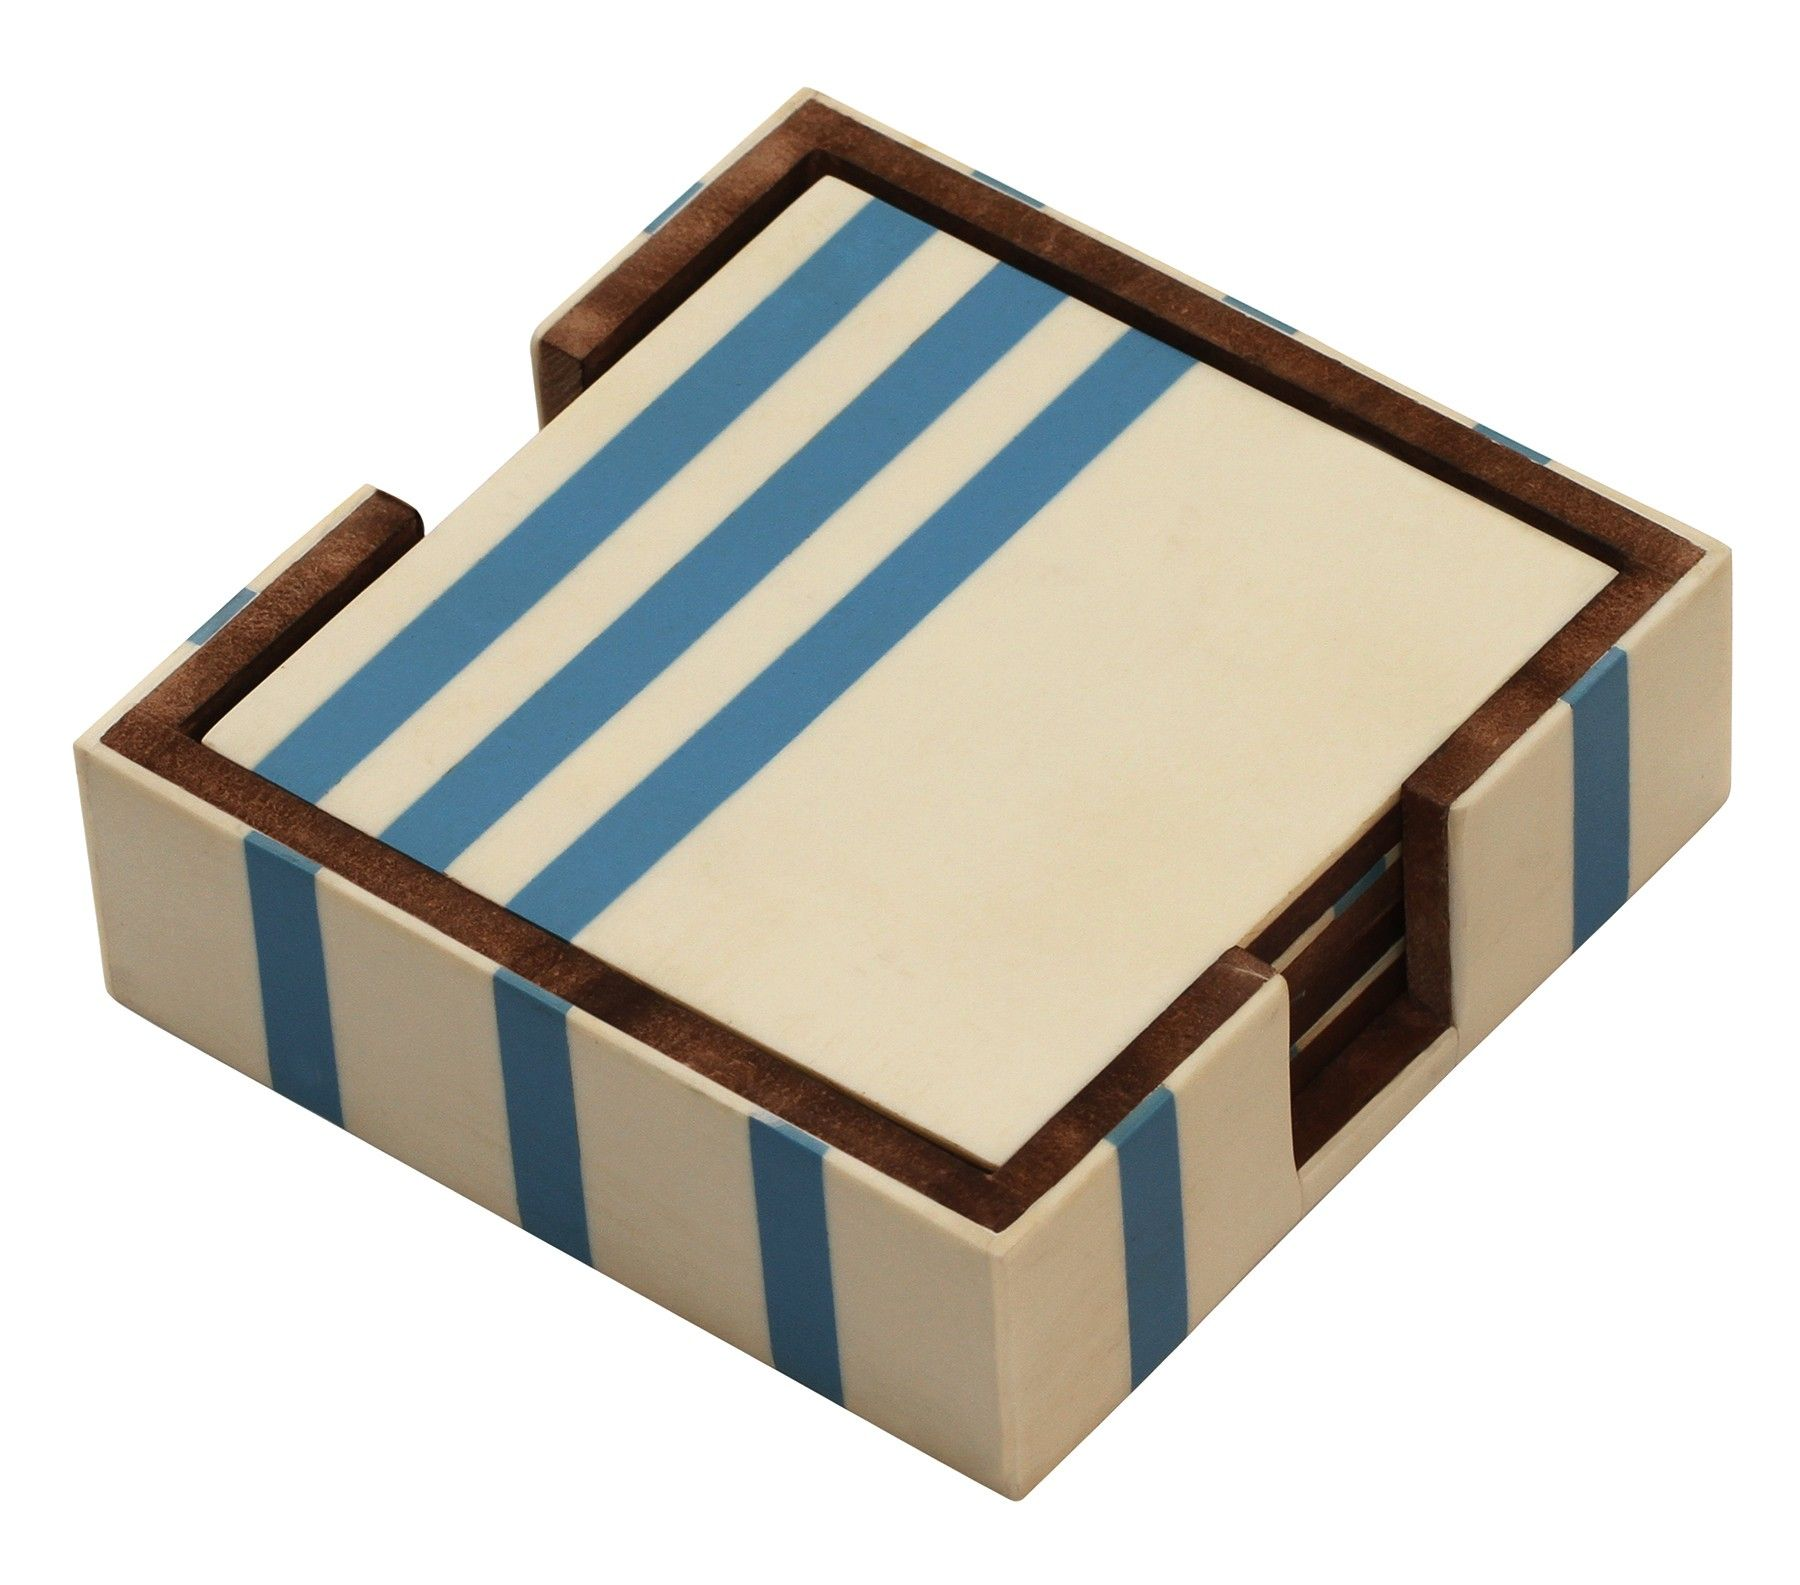 Tiny Mats Handmade Wooden Square Coasters In Set Of 4 With Holder In Blue Off White Colors Coaster Set Handmade Wooden Handmade Coasters